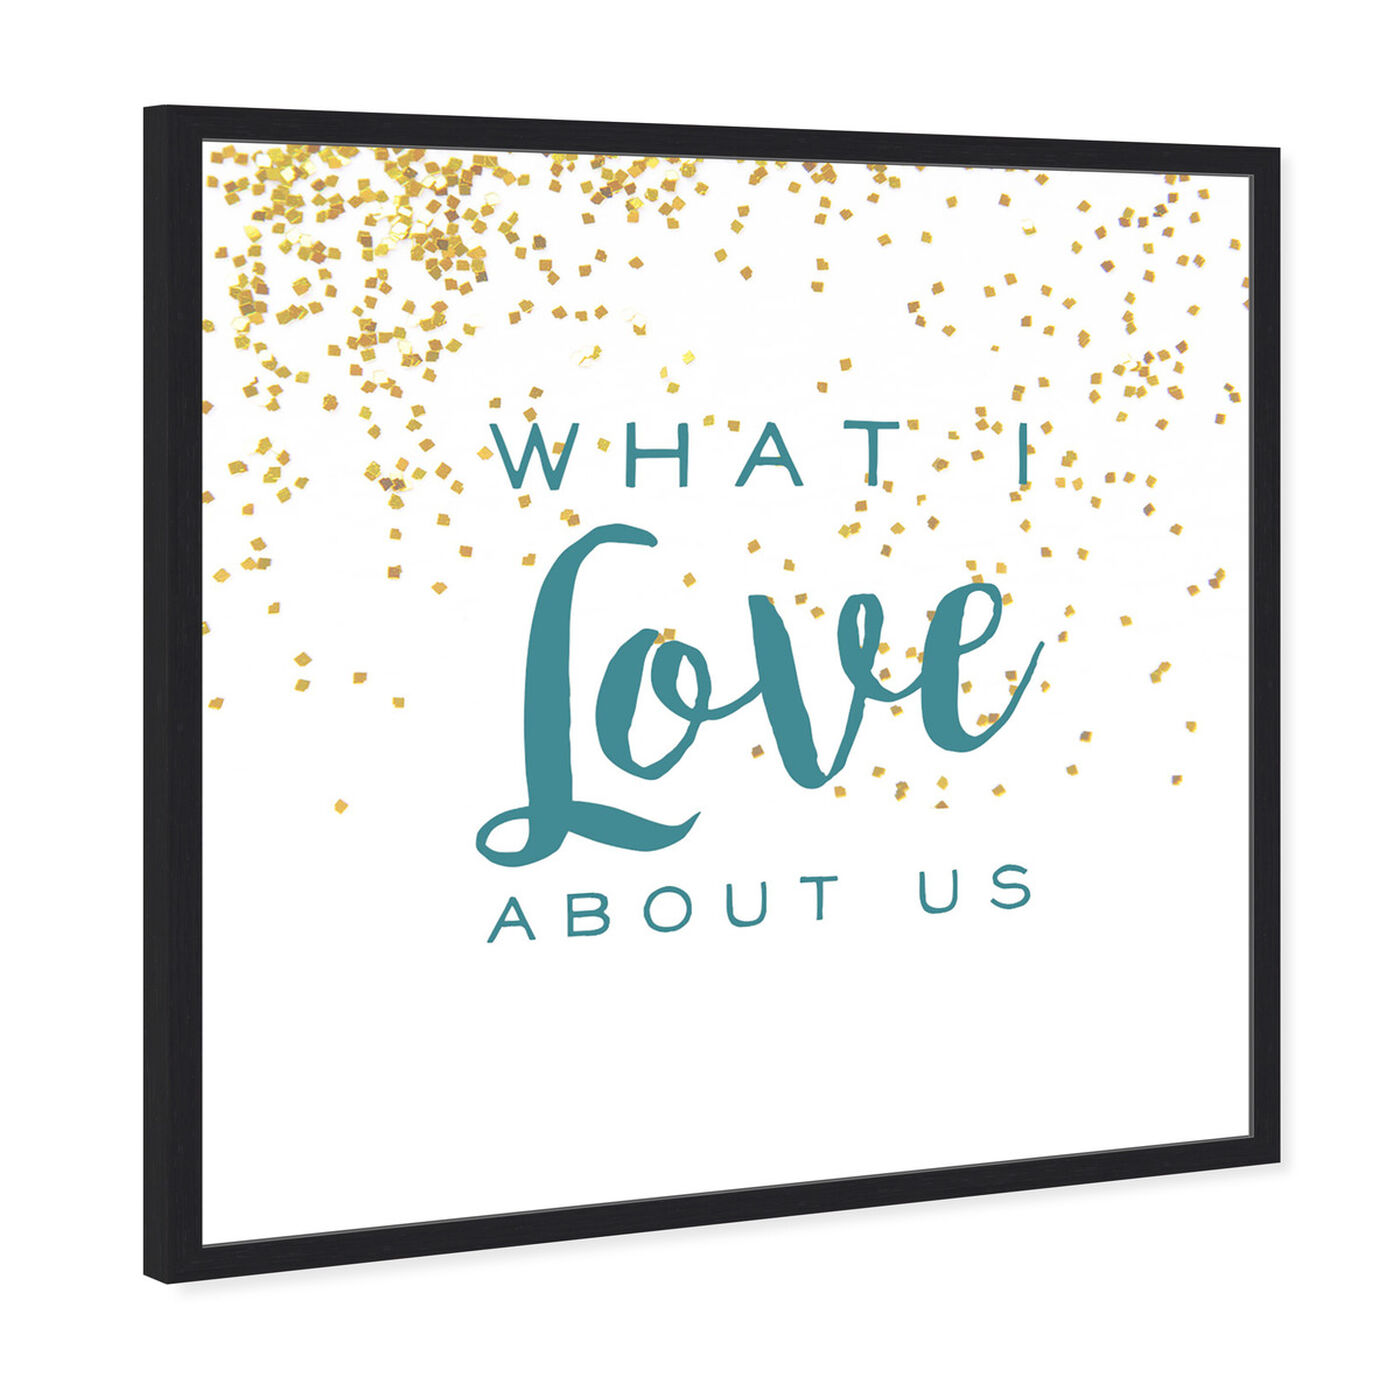 Angled view of What I Love About Us featuring typography and quotes and love quotes and sayings art.